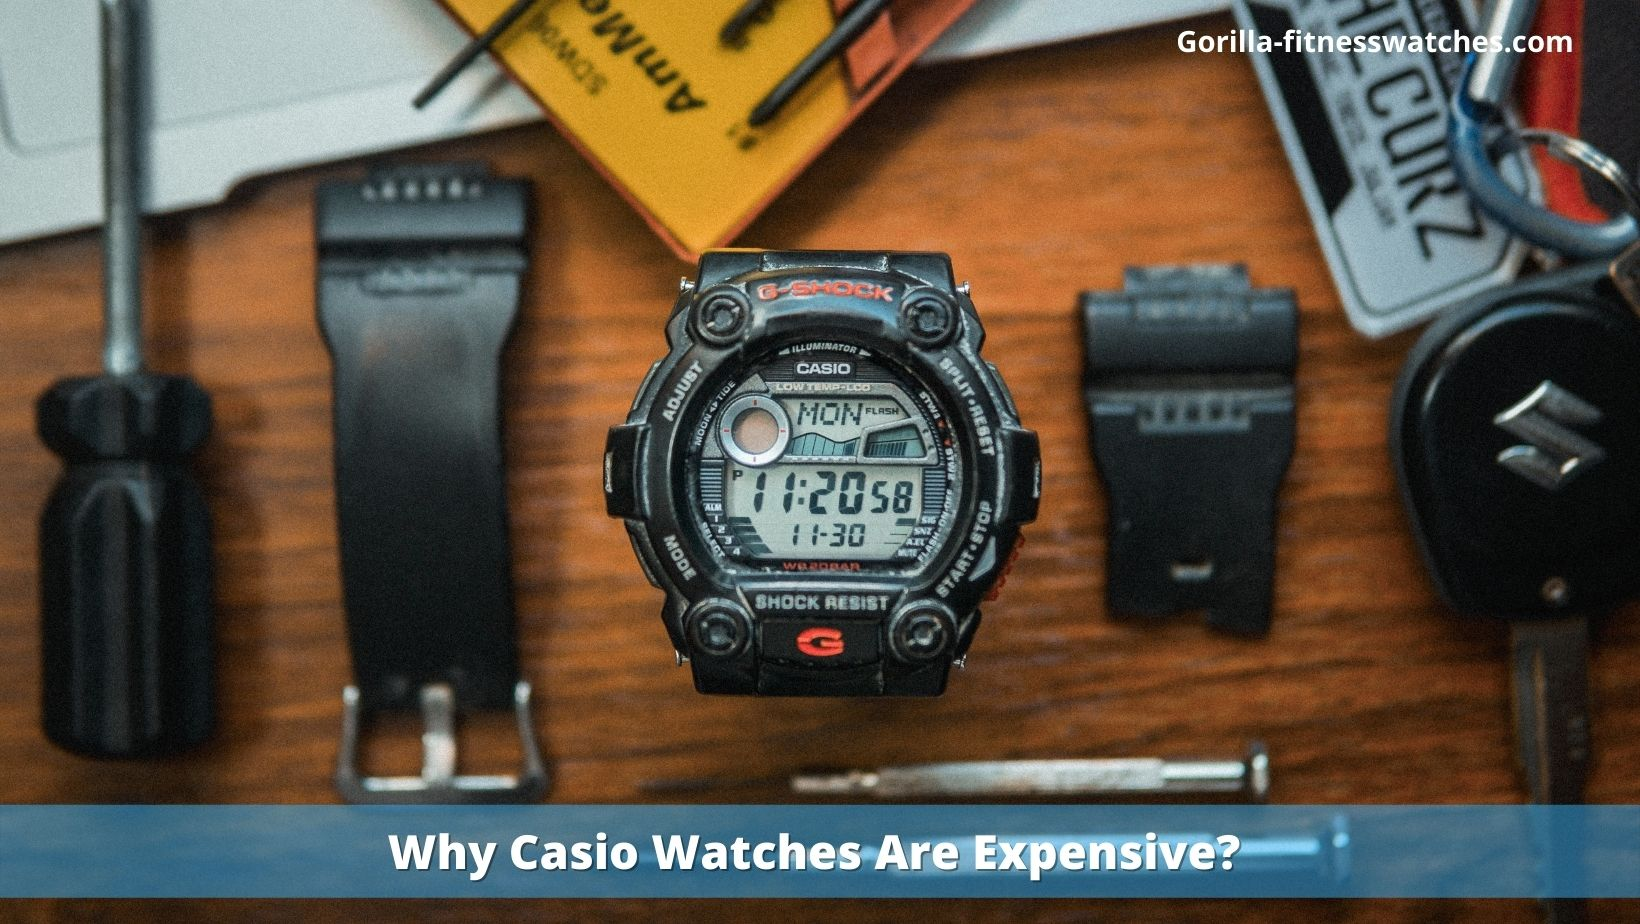 Why Casio Watches Are Expensive?